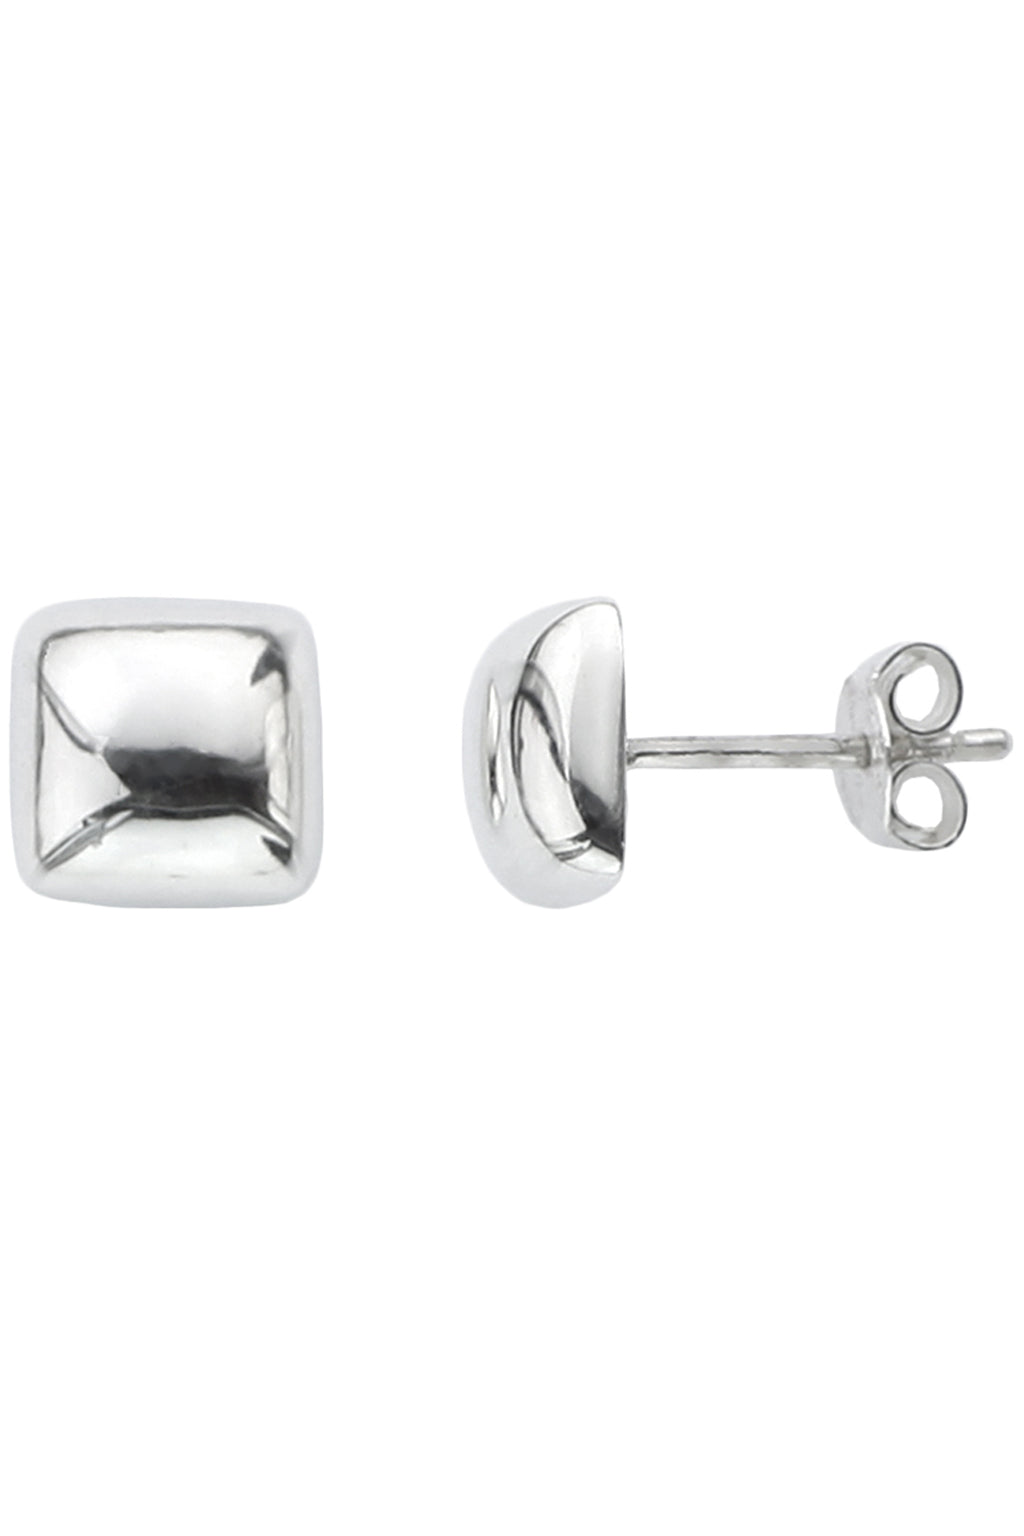 Silver Square Cushion Stud Earrings | Nina B Jewellery